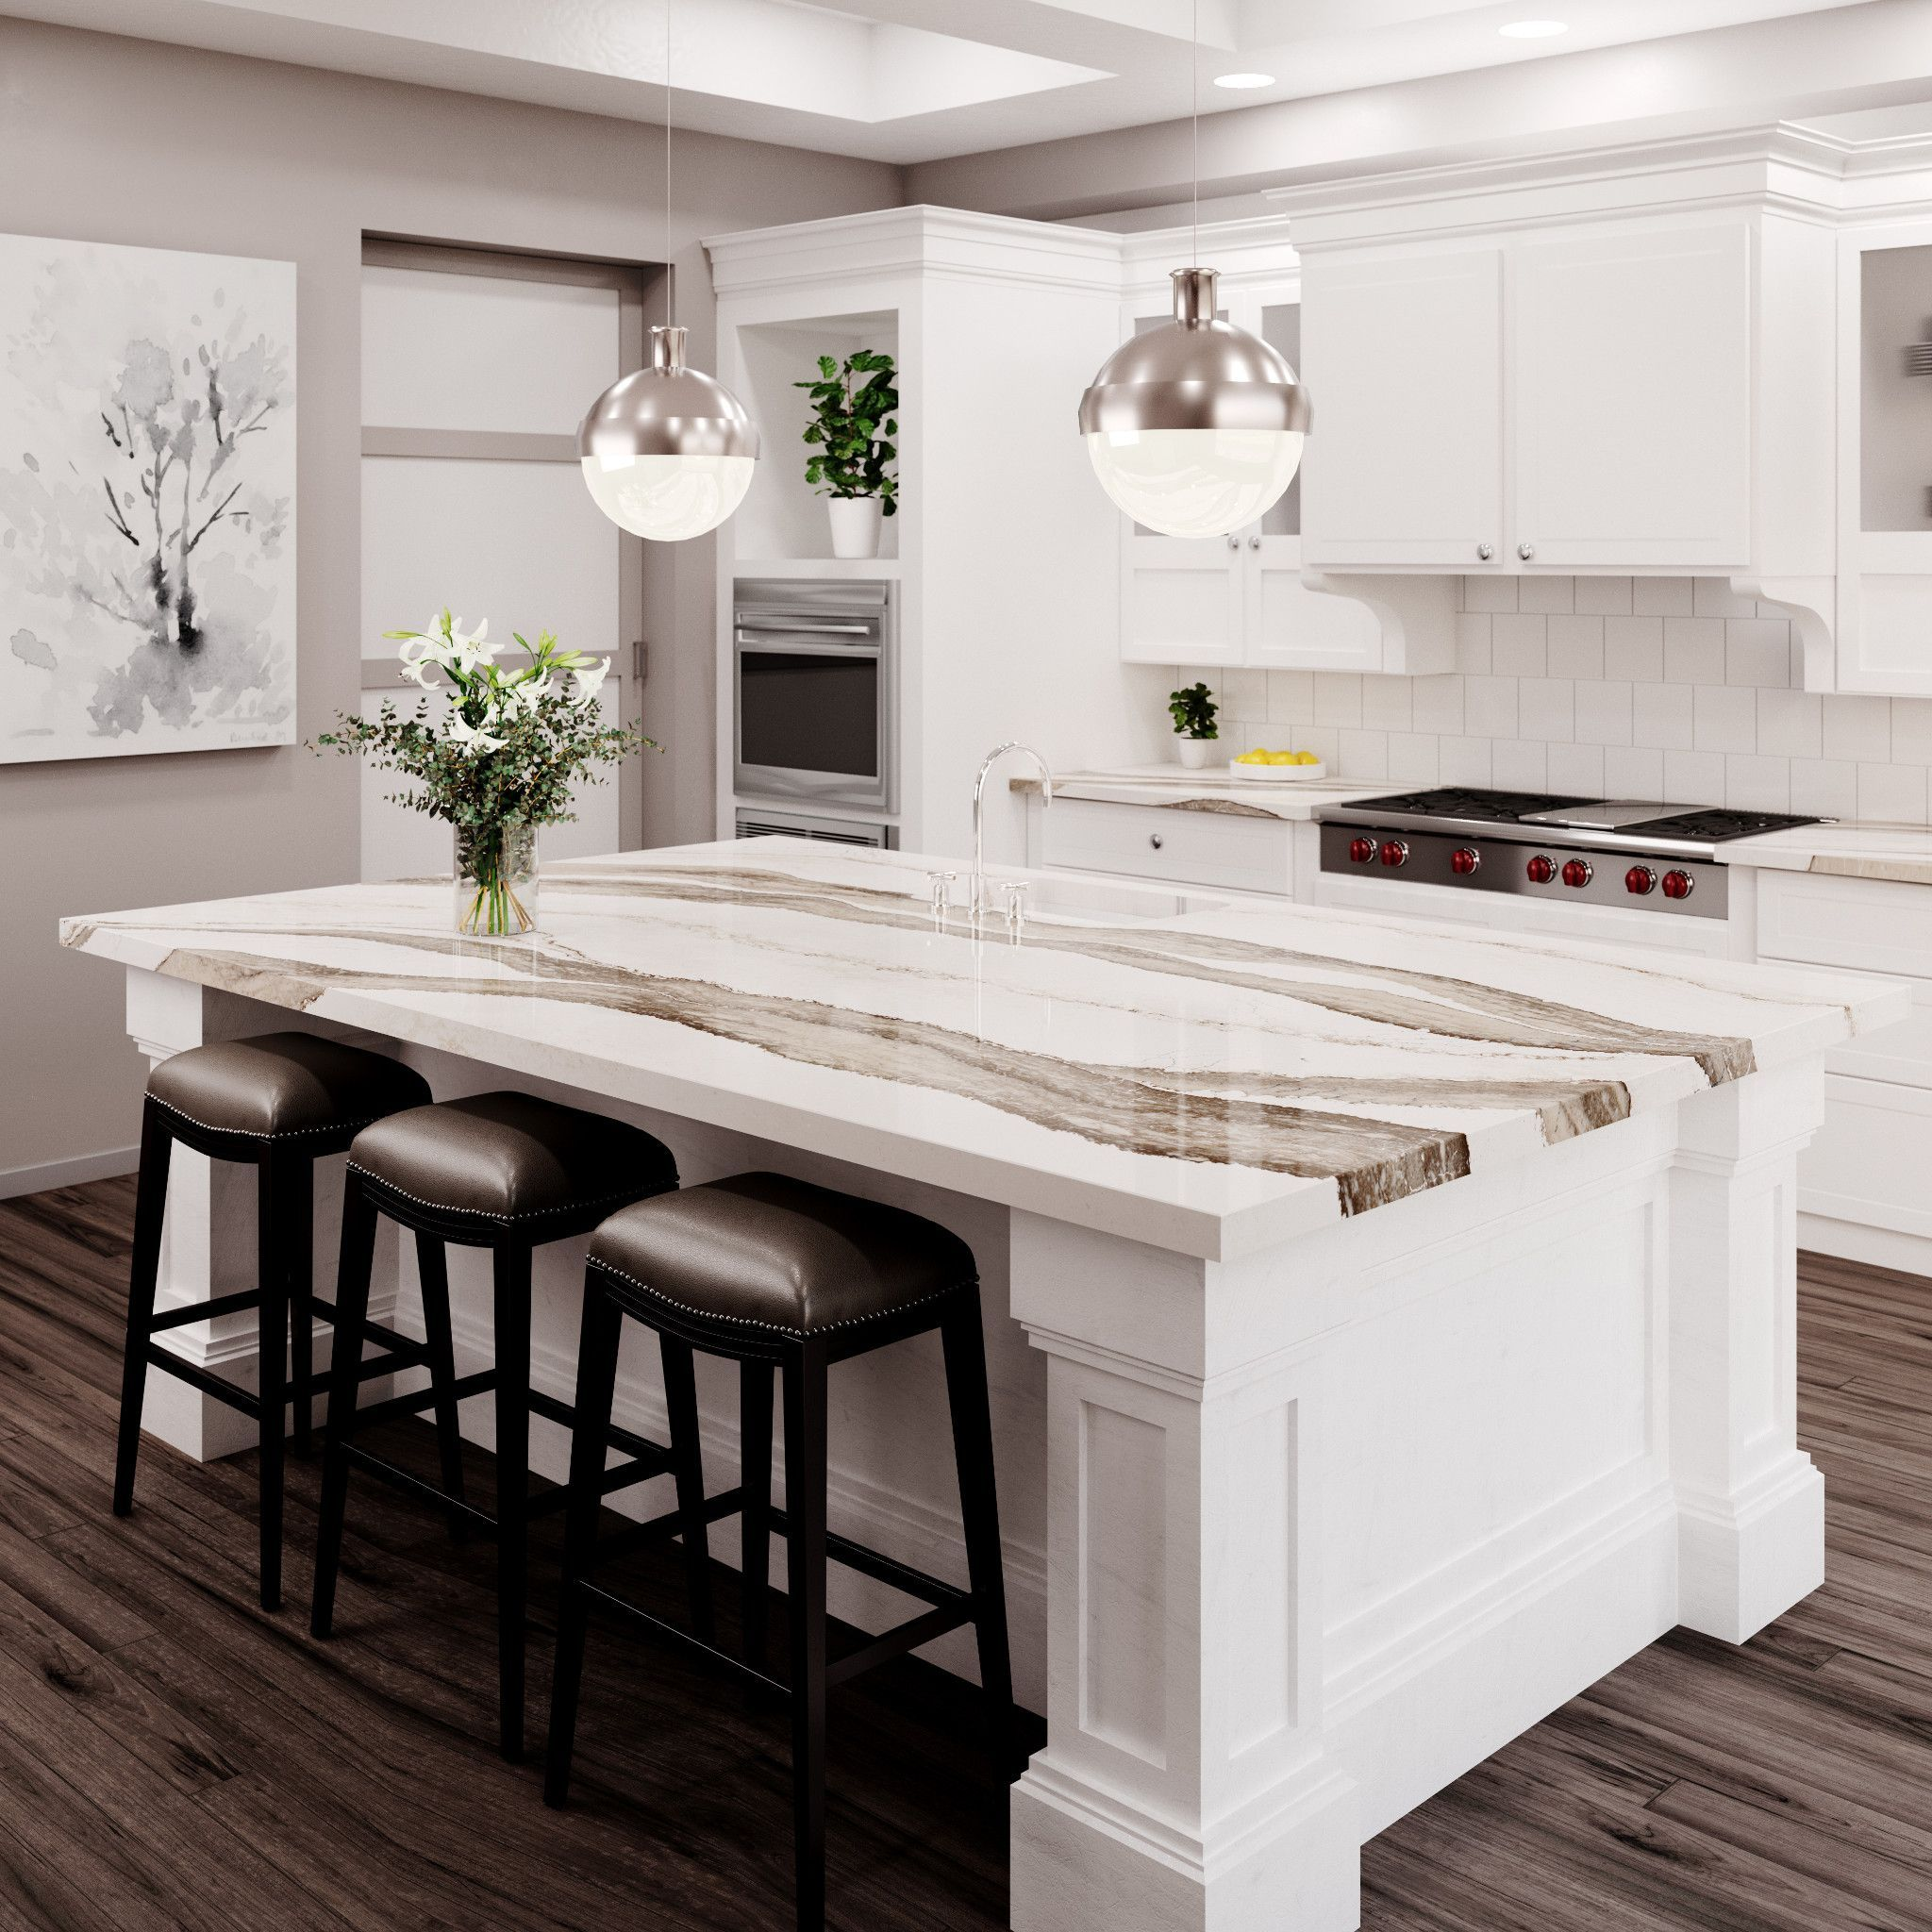 Skara Brae Cambria Quartz Kitchen With White Wood Cabinets Bar Stools And Stainles Countertop Design Replacing Kitchen Countertops Quartz Kitchen Countertops